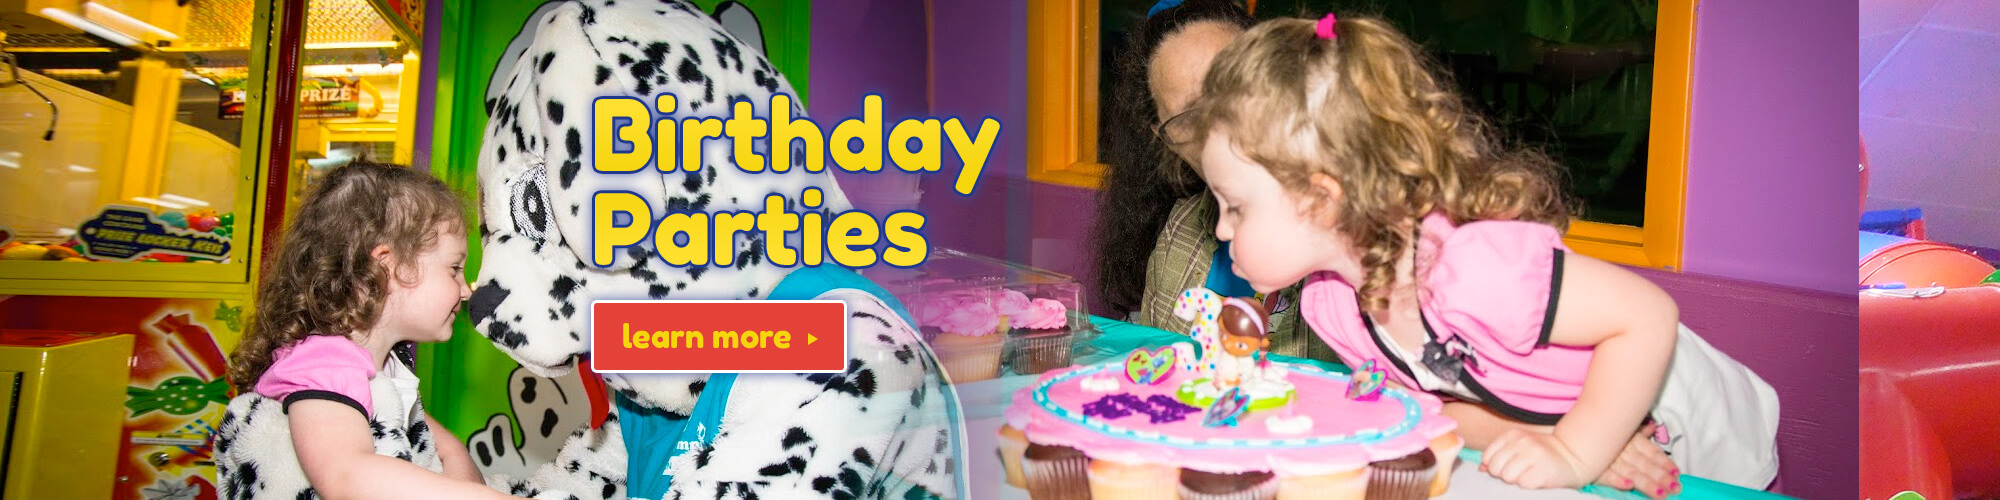 Birthday Party, Child's Party, Kids' Party. Party Venue